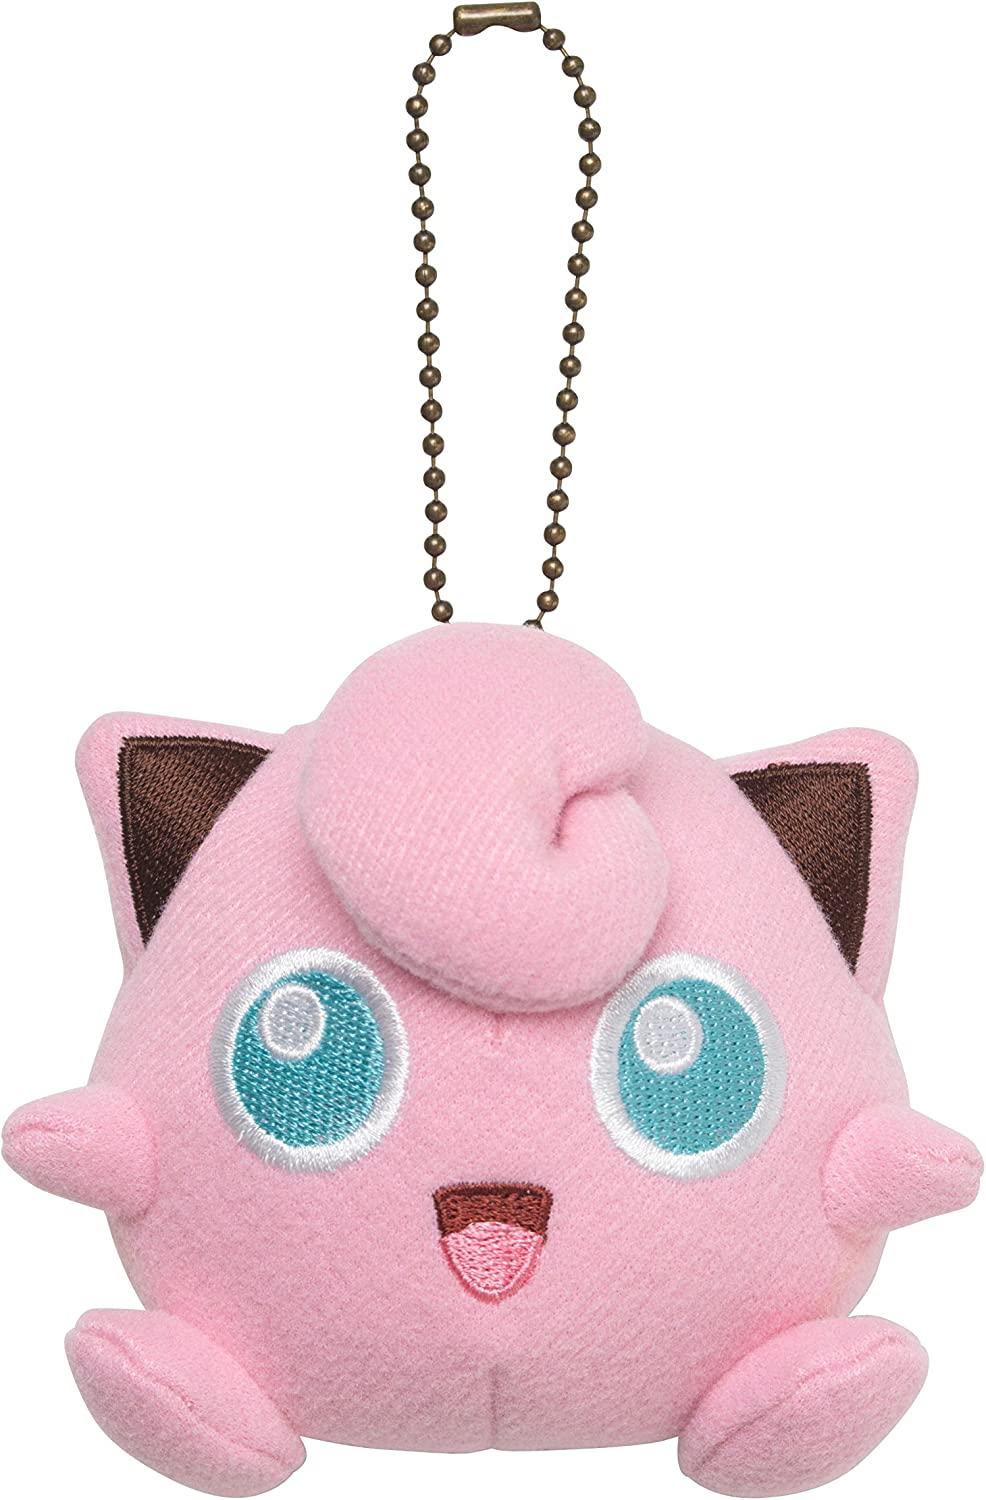 Pokemon Center Original Pokemon Market mascot Jigglypuff purin